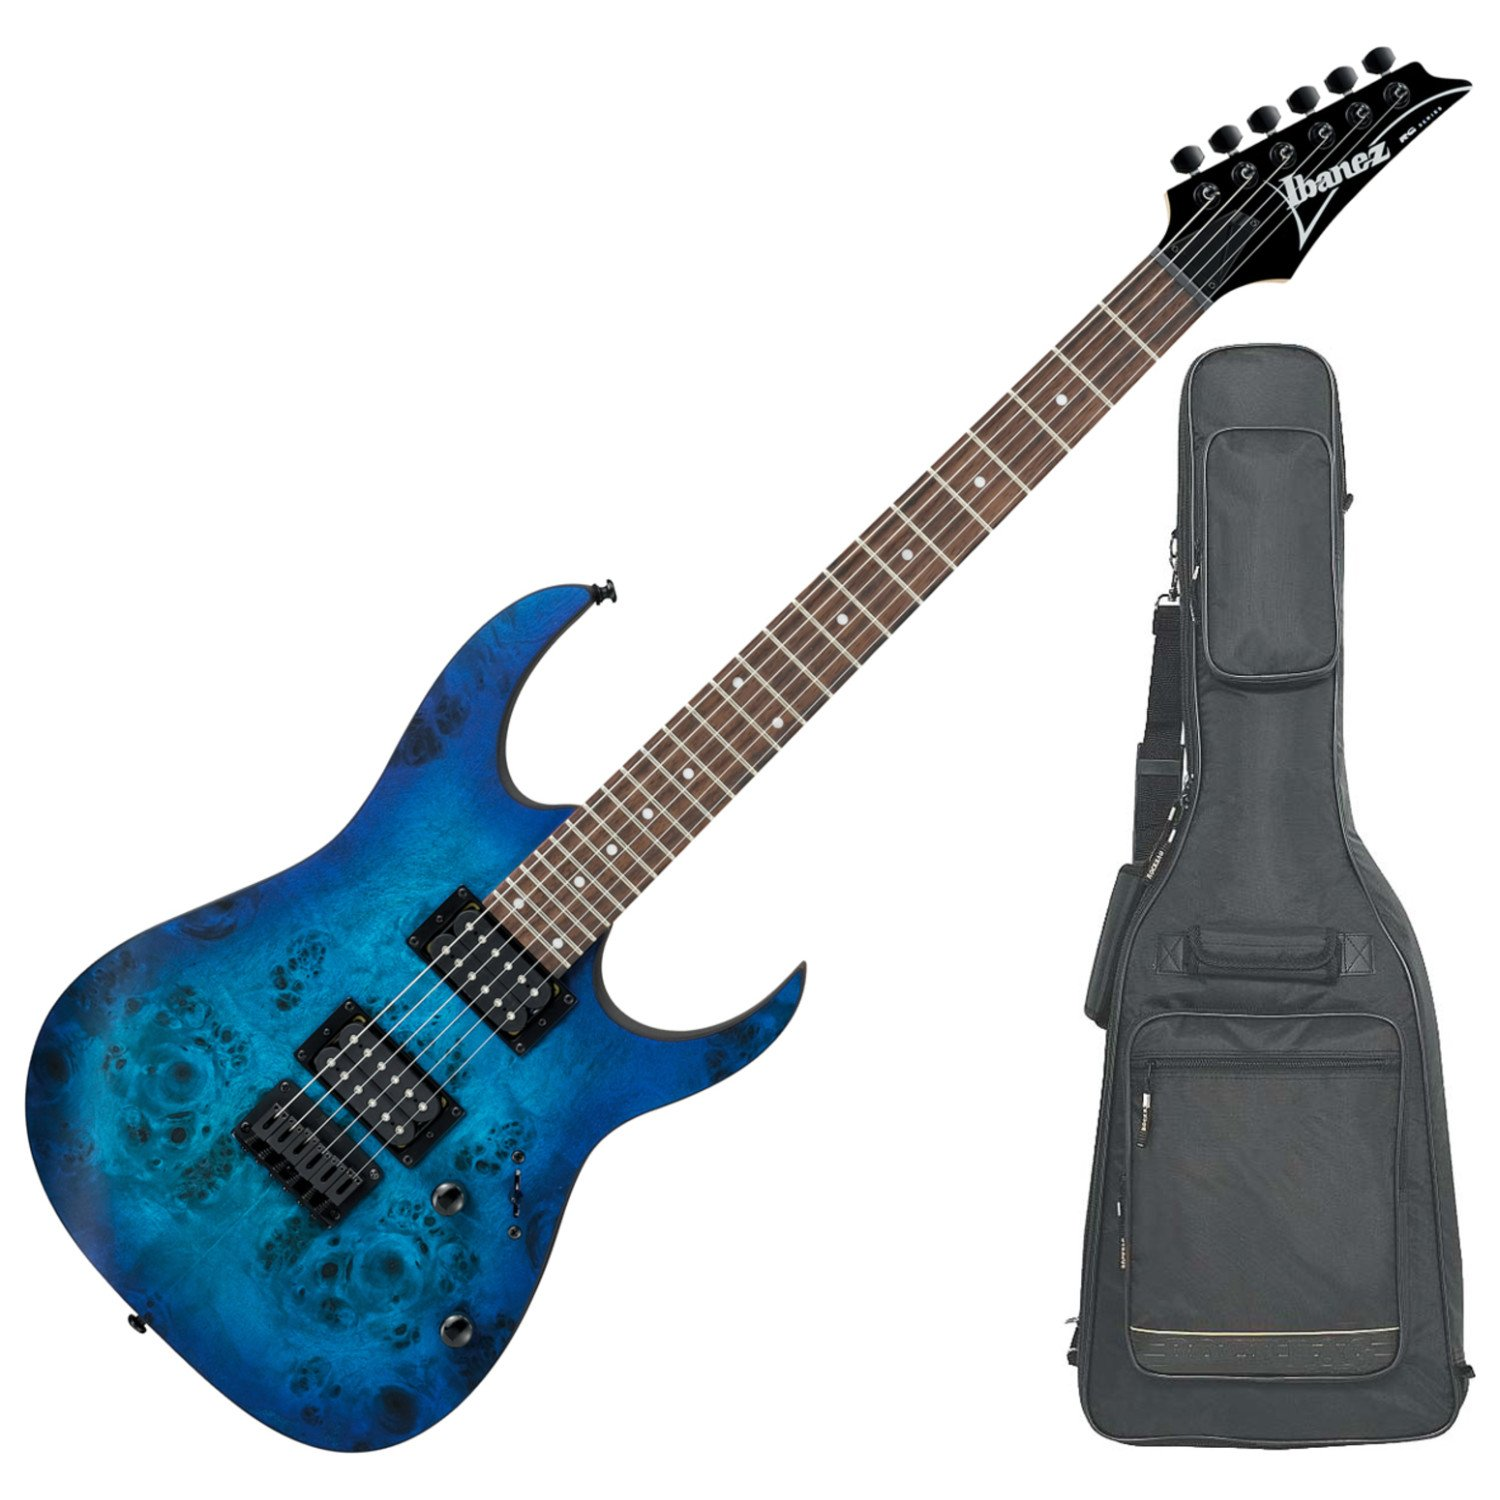 Cheap Ibanez RG421PBSBF RG HARD TAIL Series Electric Guitar (Sapphire Blue Flat) with DLX Gig Bag Black Friday & Cyber Monday 2019